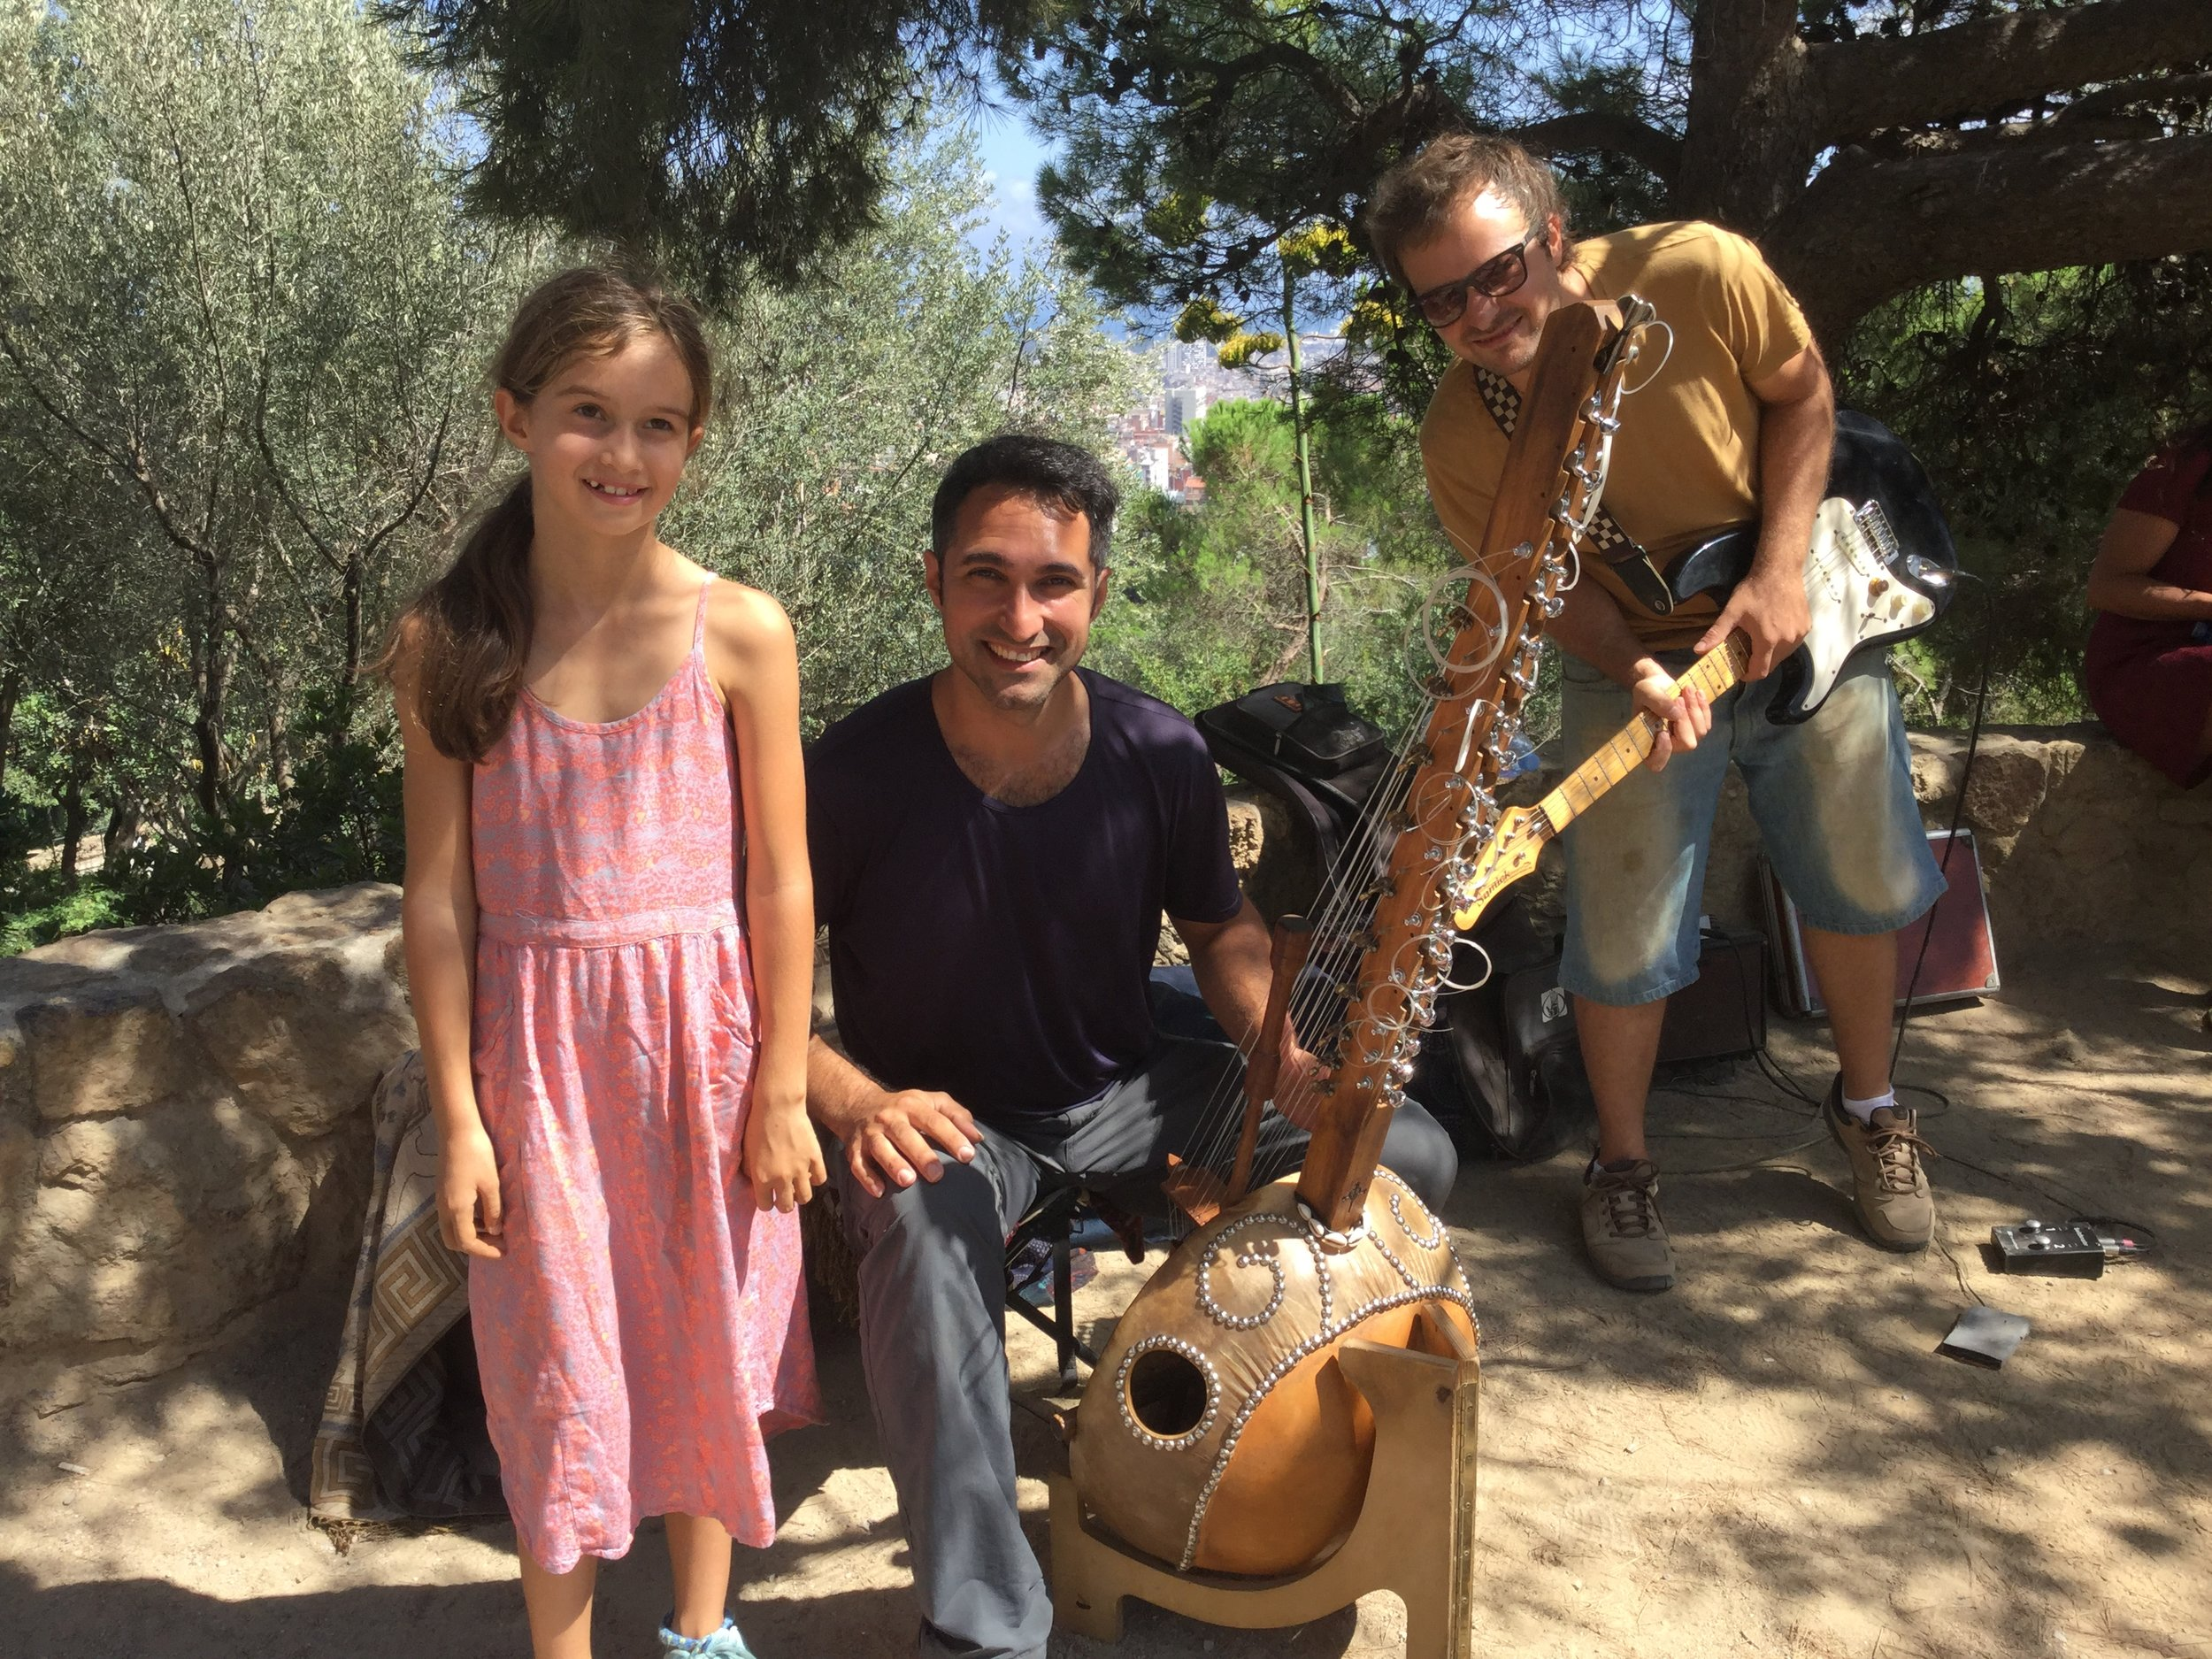 And we got a photo with Lili!    The soloist is called Yerko Lorca and the guitarist Roy Apartin. You can find out more about them on Facebook at Yerko Lorca Music and at www.yerko.info